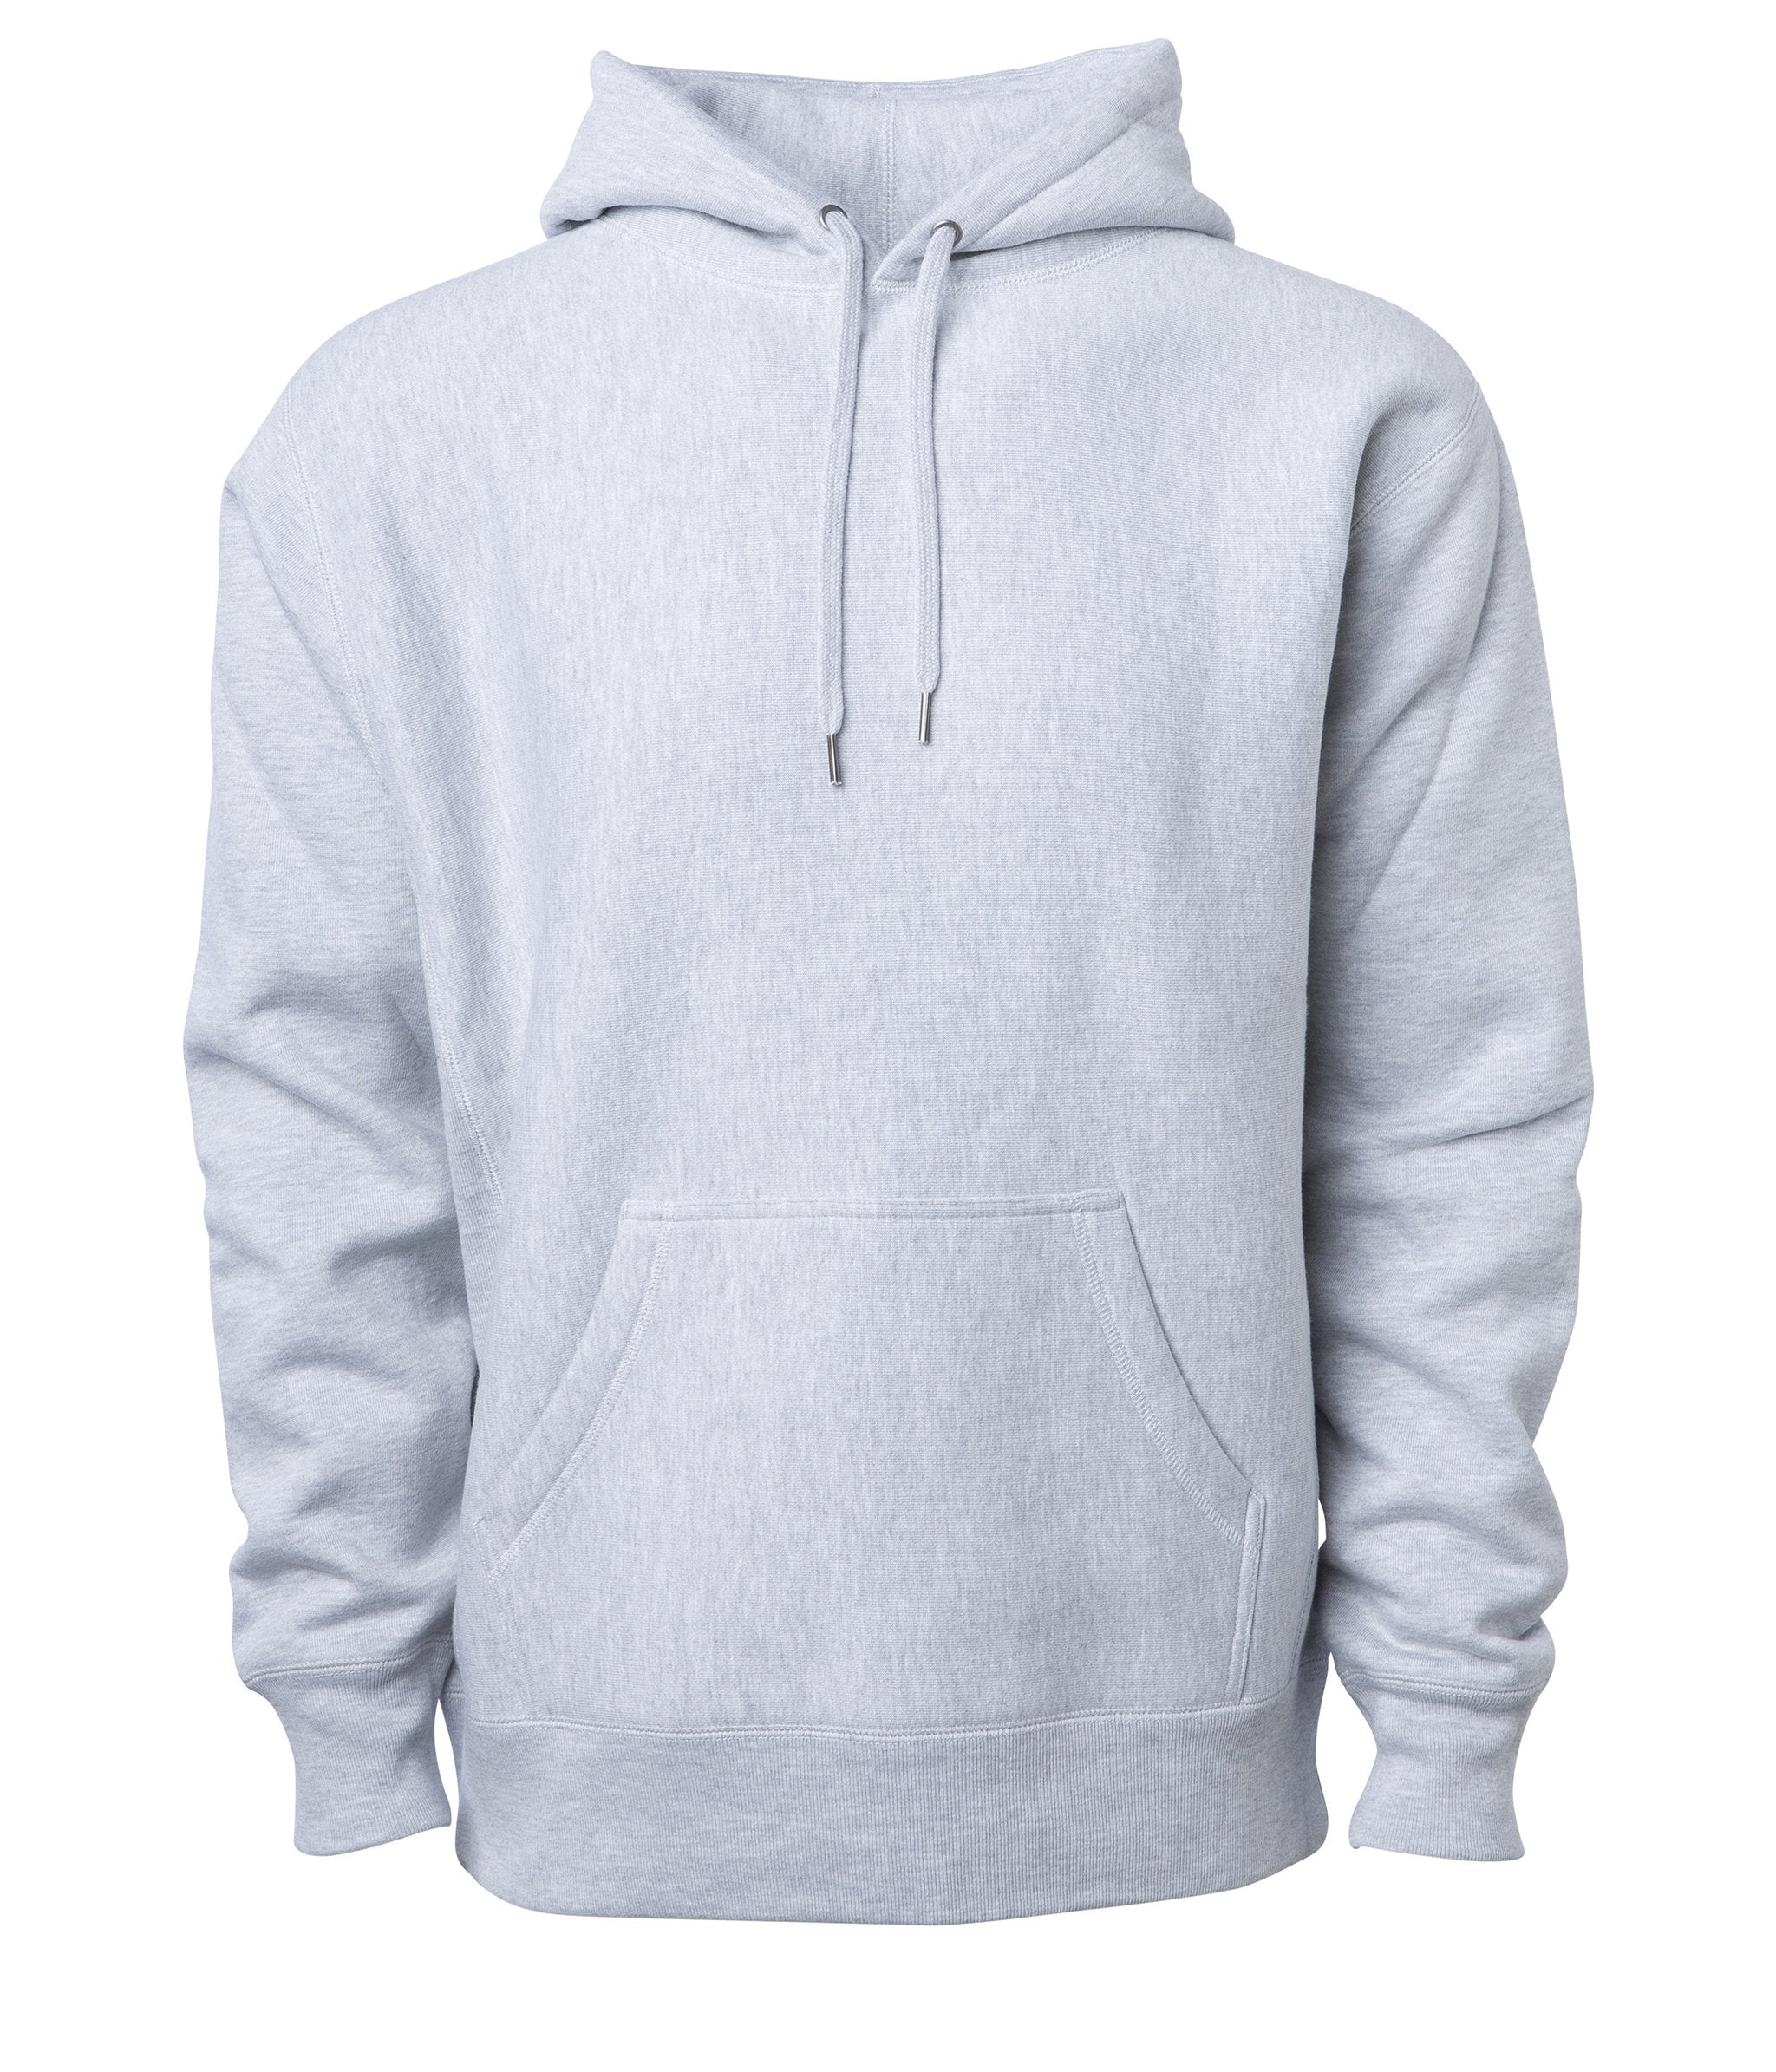 77e0757bfed Legend - Men's Premium 450gm Heavyweight Cross-Grain Hoodie ...